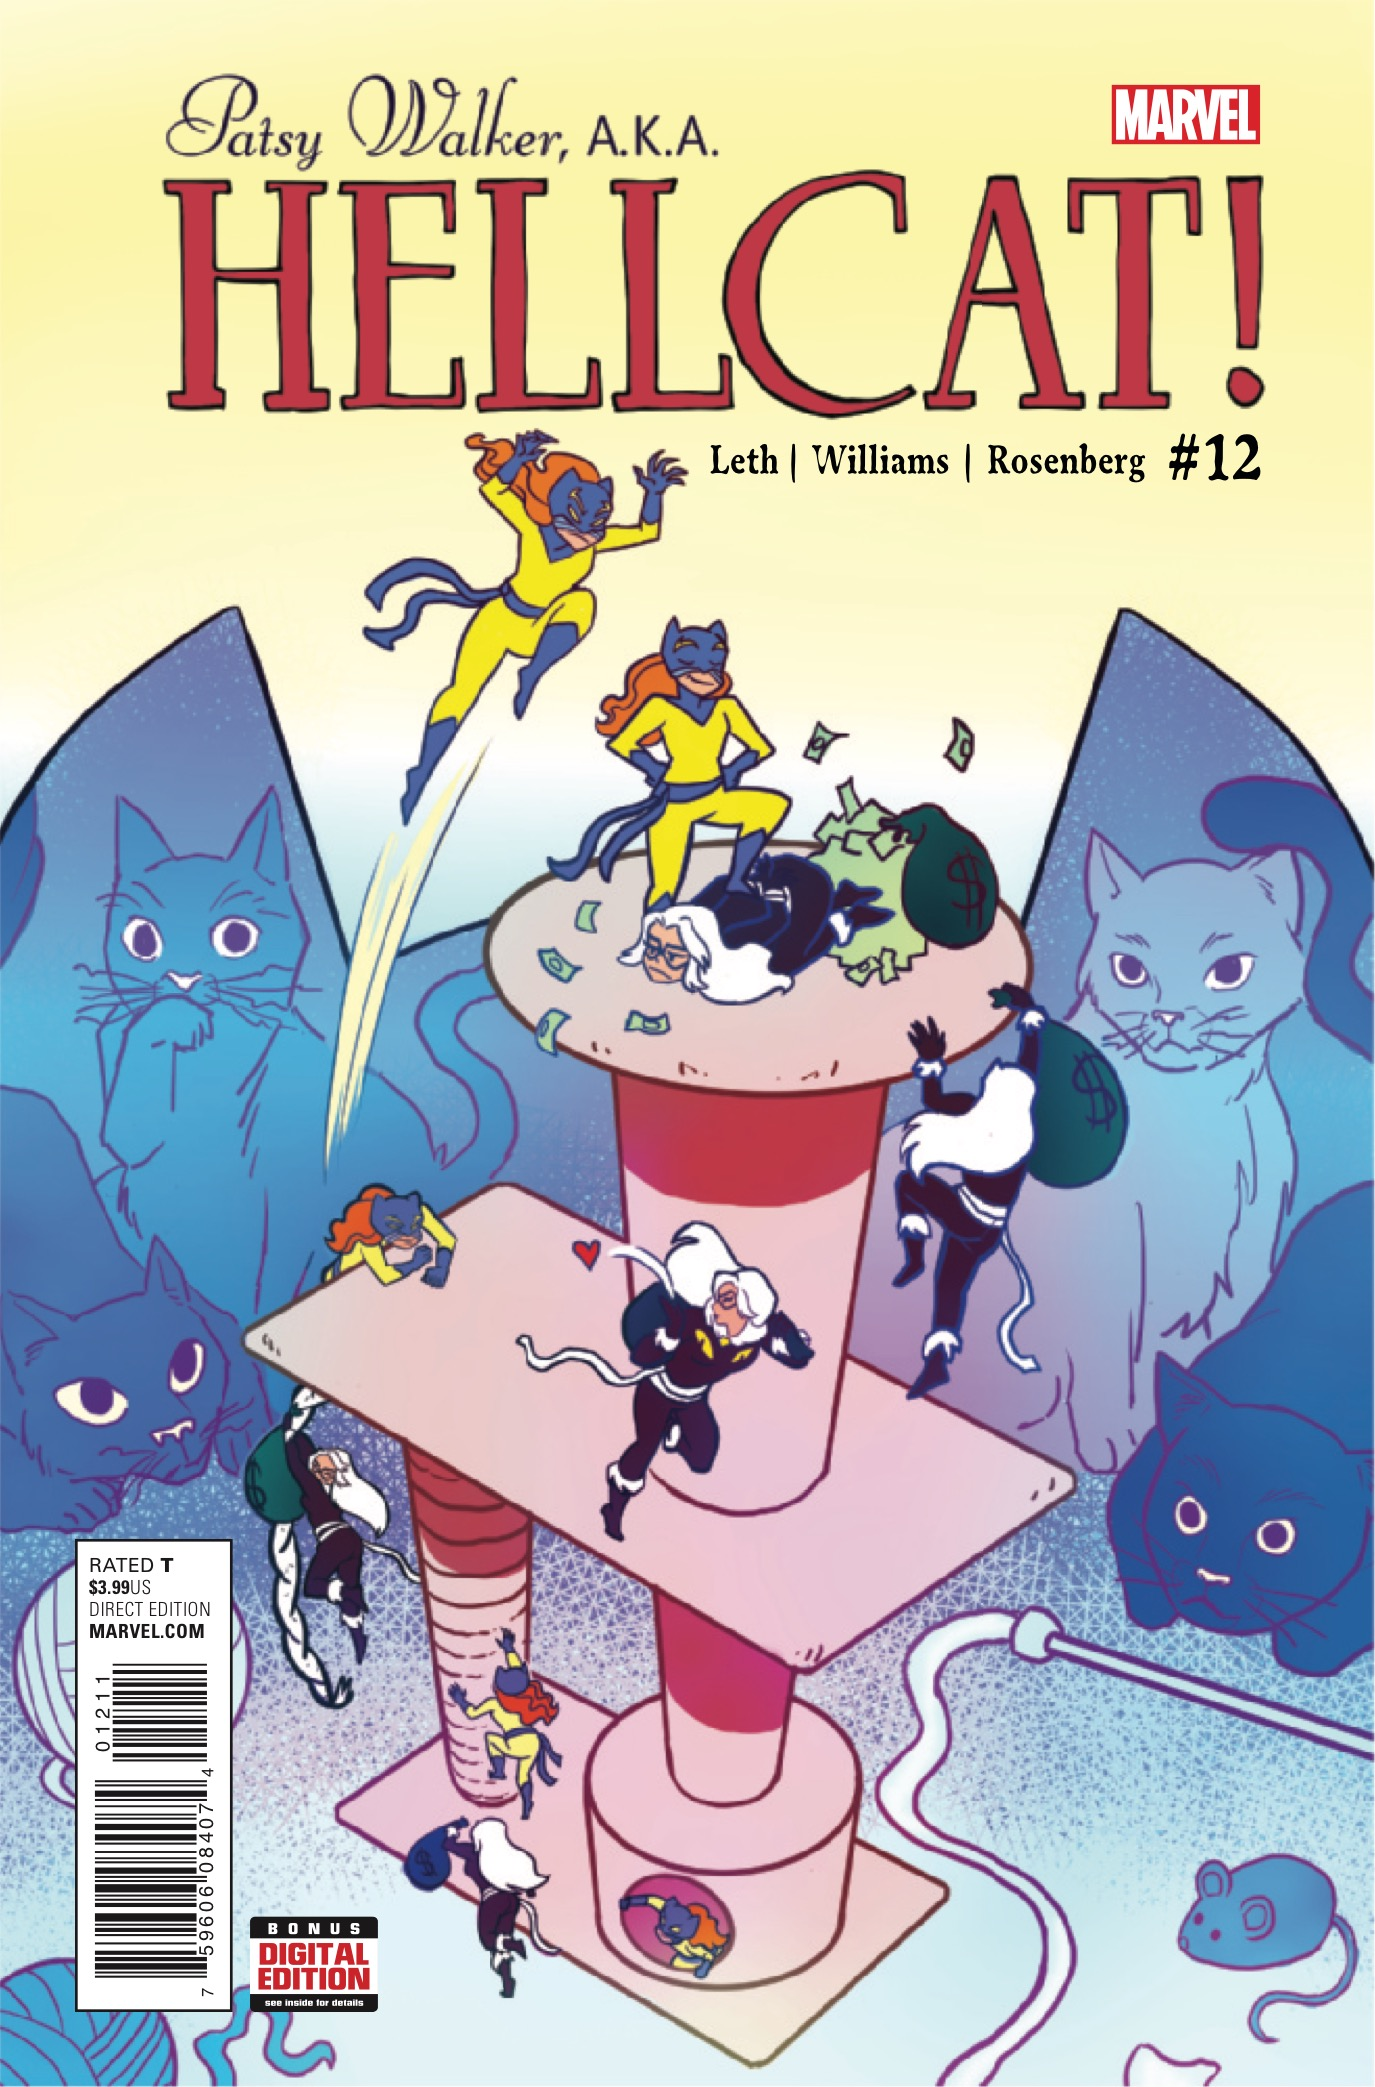 Marvel Preview: Patsy Walker, A.K.A Hellcat! #12